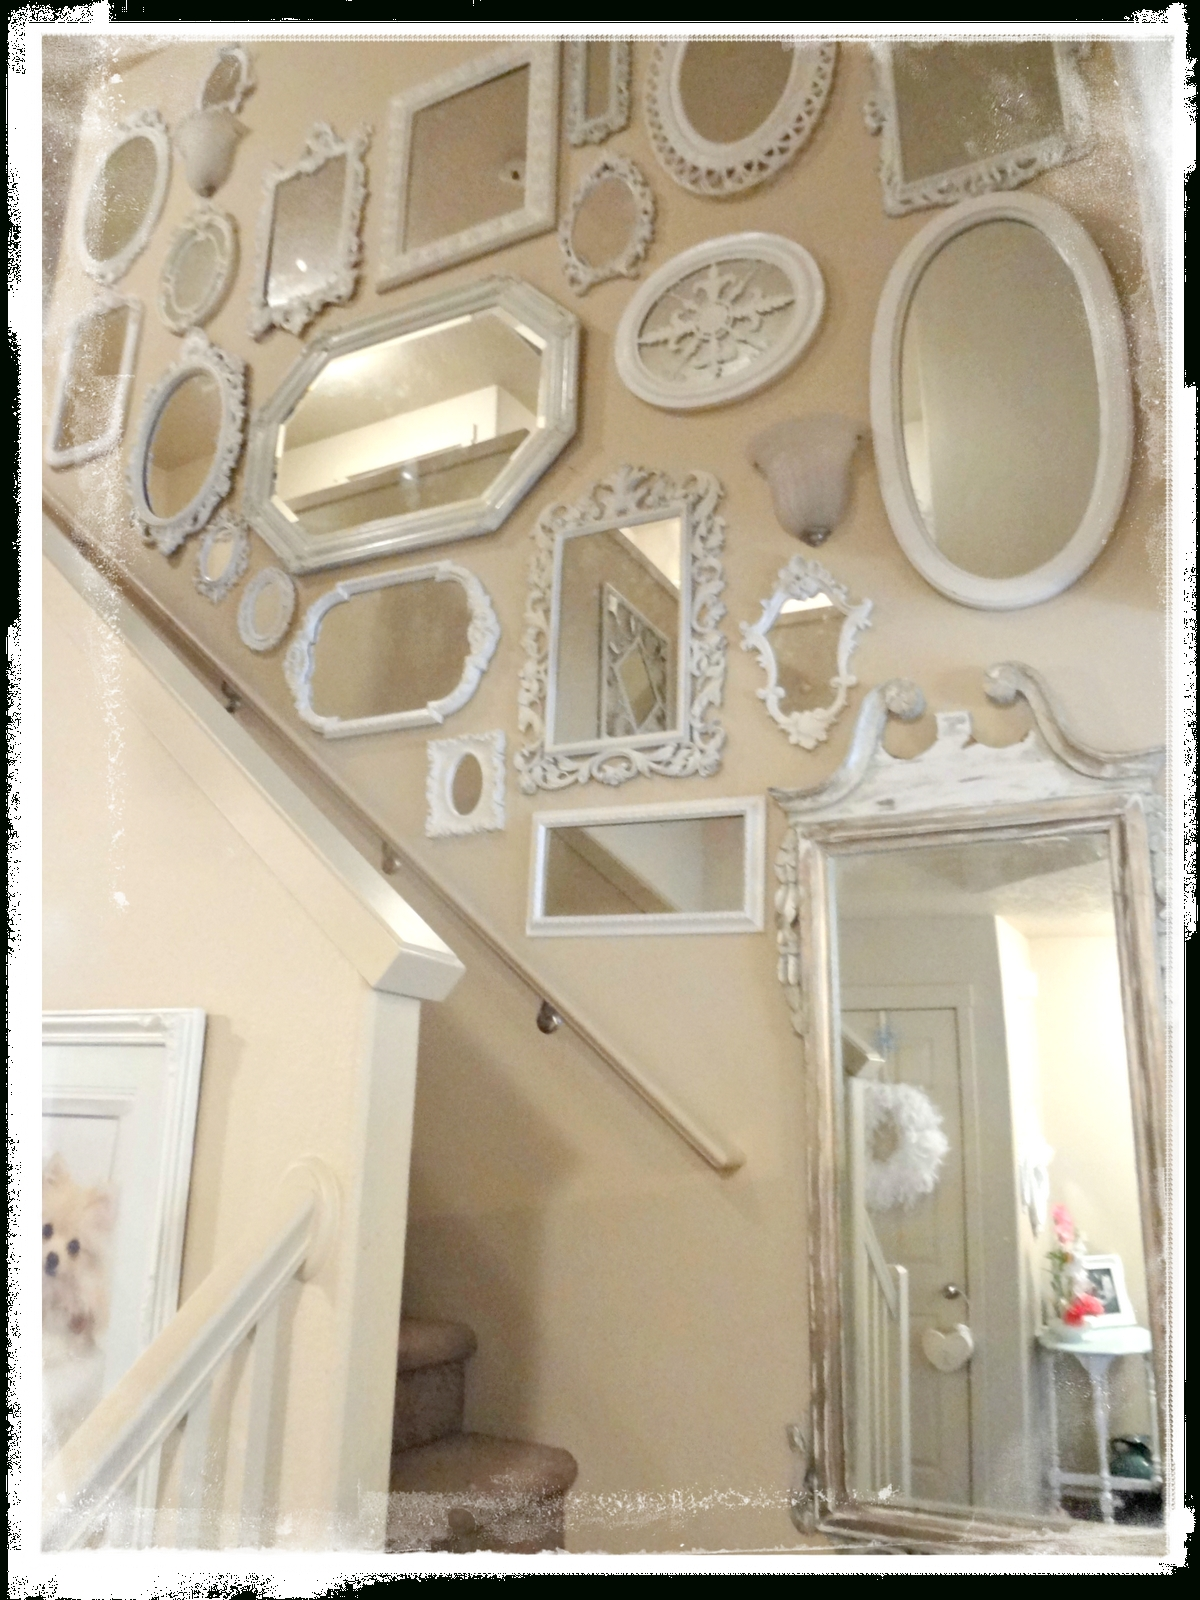 Shabby Chic Mirror ~ Holst regarding Shabby Chic Mirrors (Image 15 of 25)